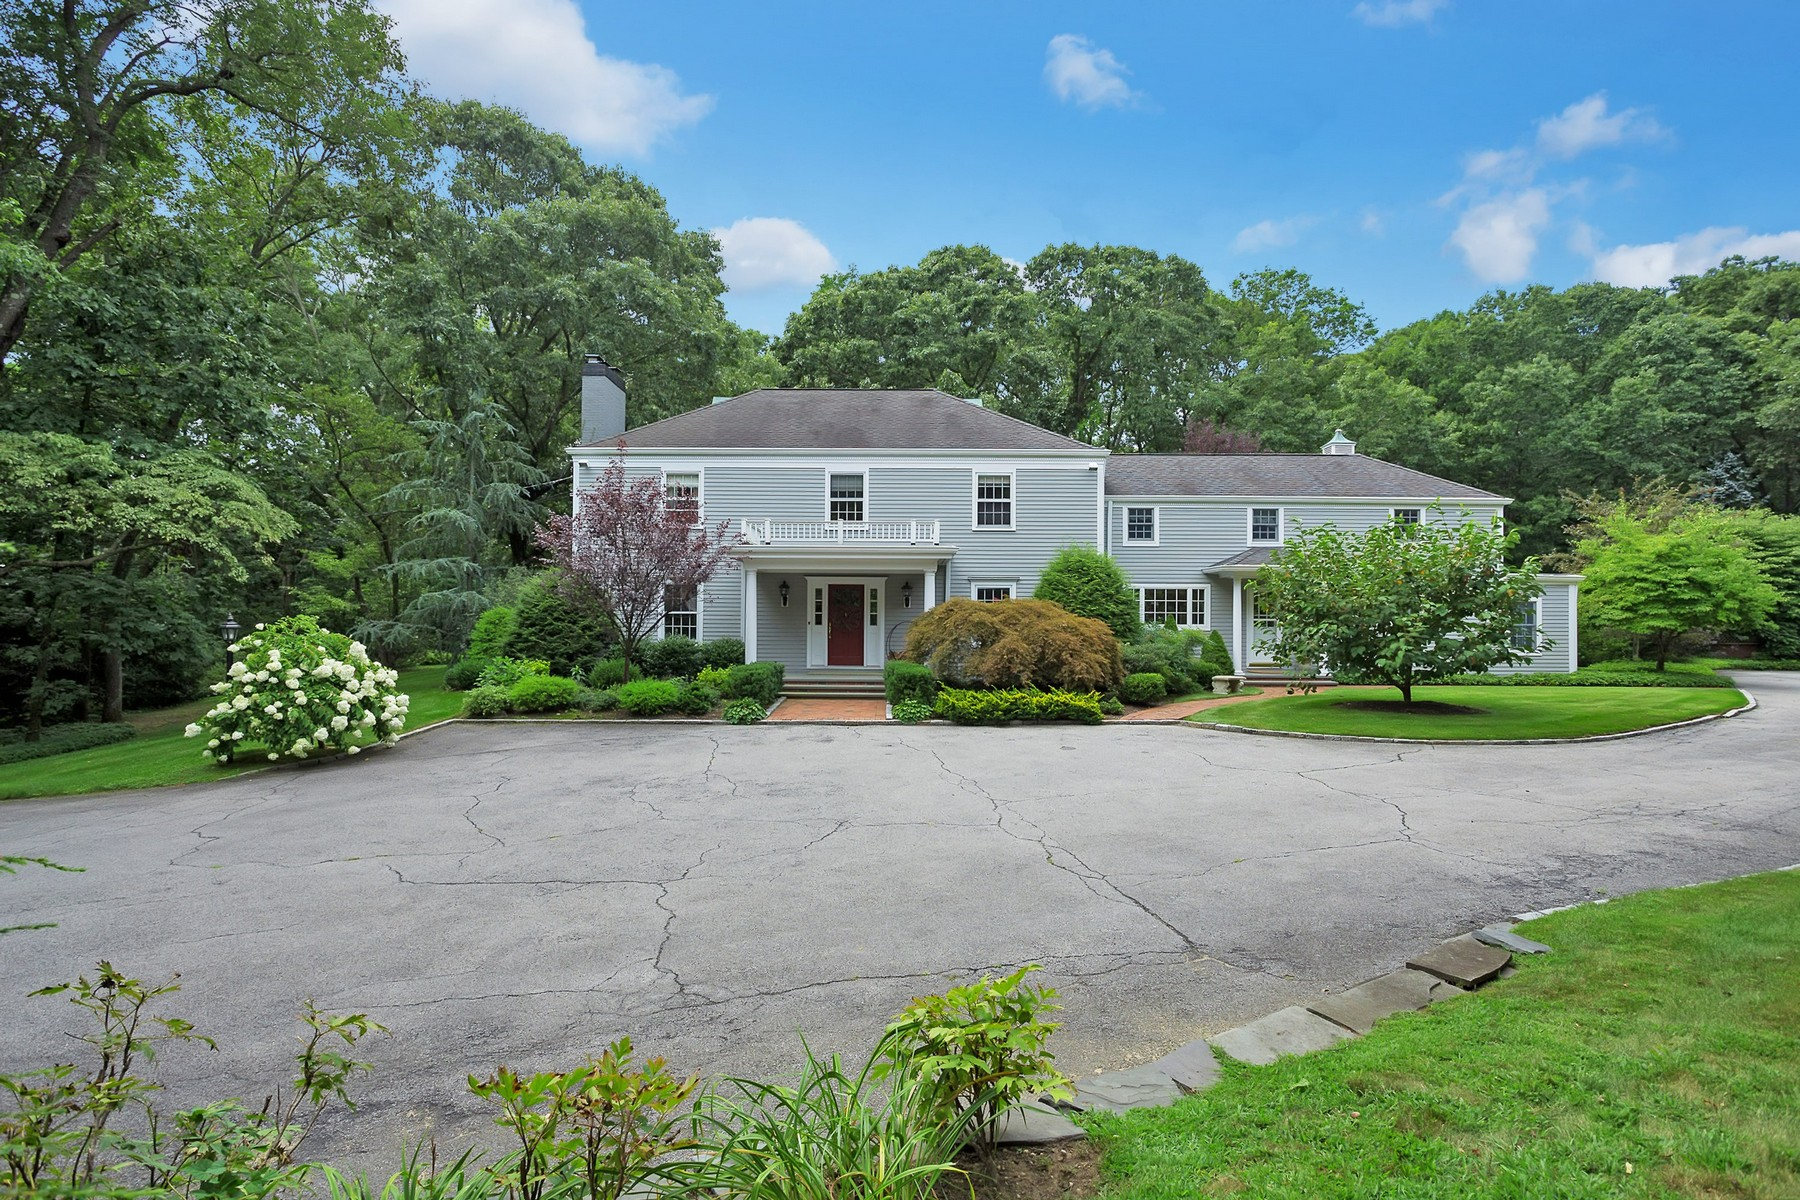 Single Family Home for Sale at Colonial 355 Split Rock Rd Syosset, New York, 11791 United States